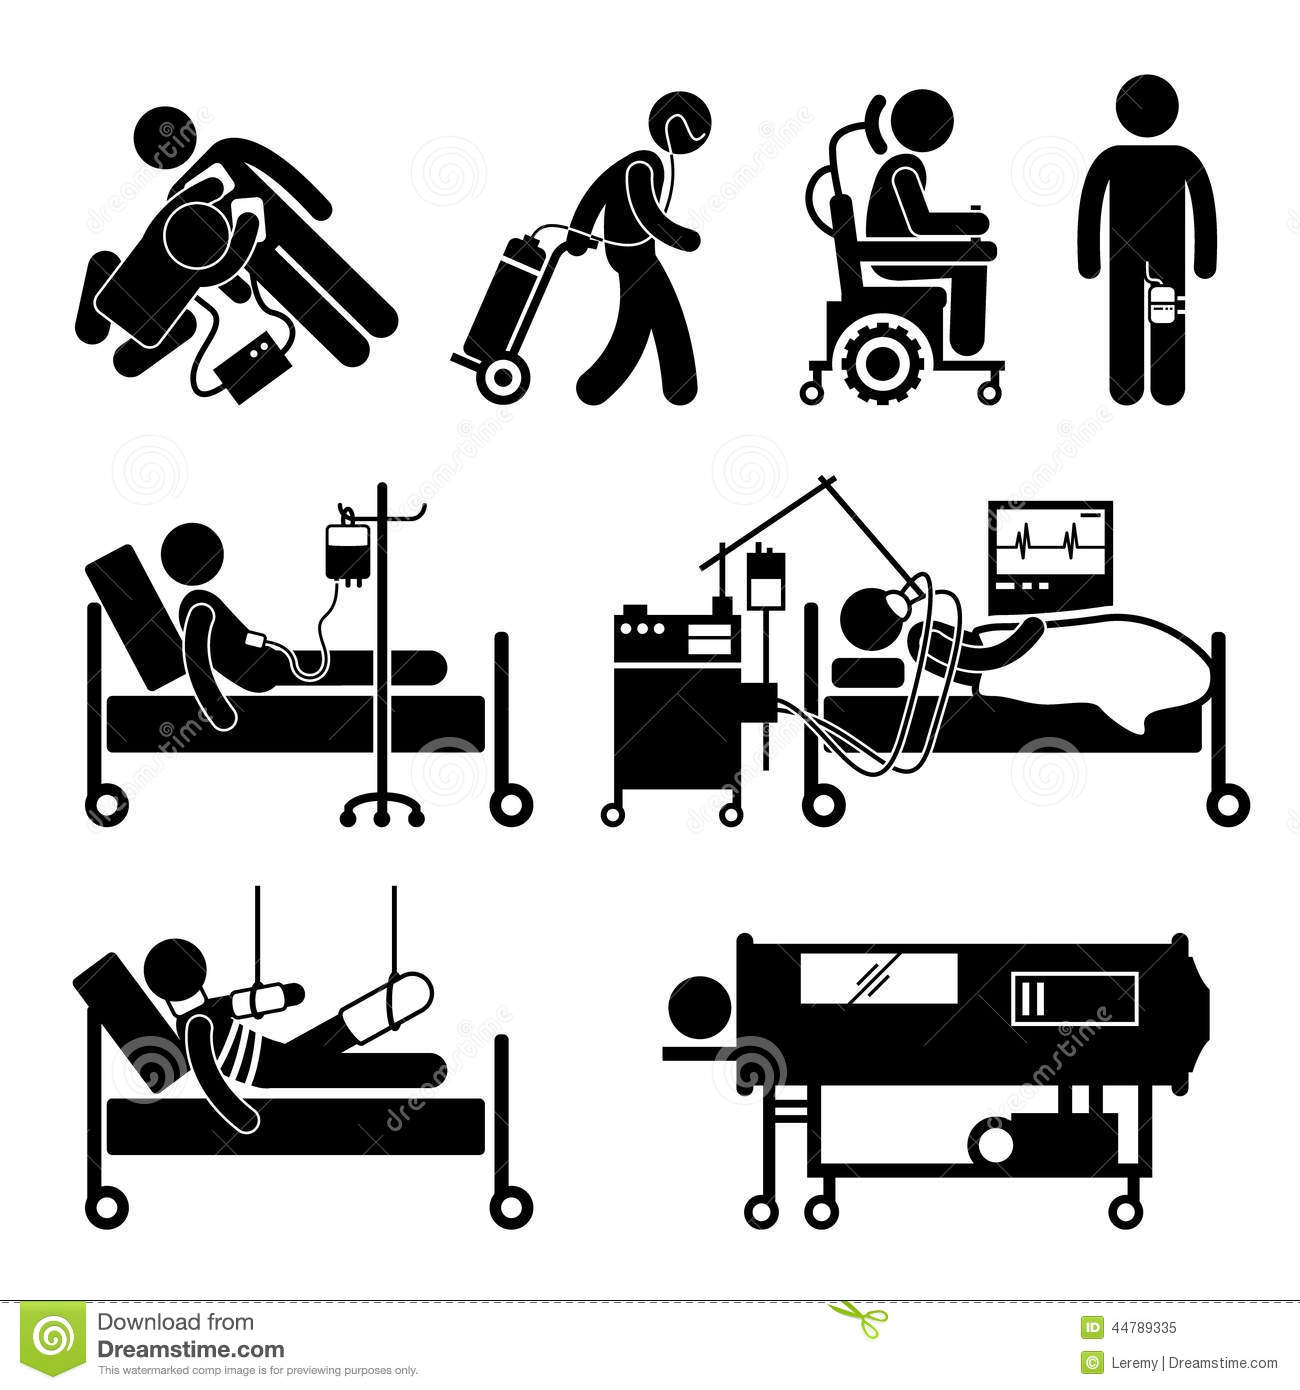 life support equipments cliparts icons stock vector illustration